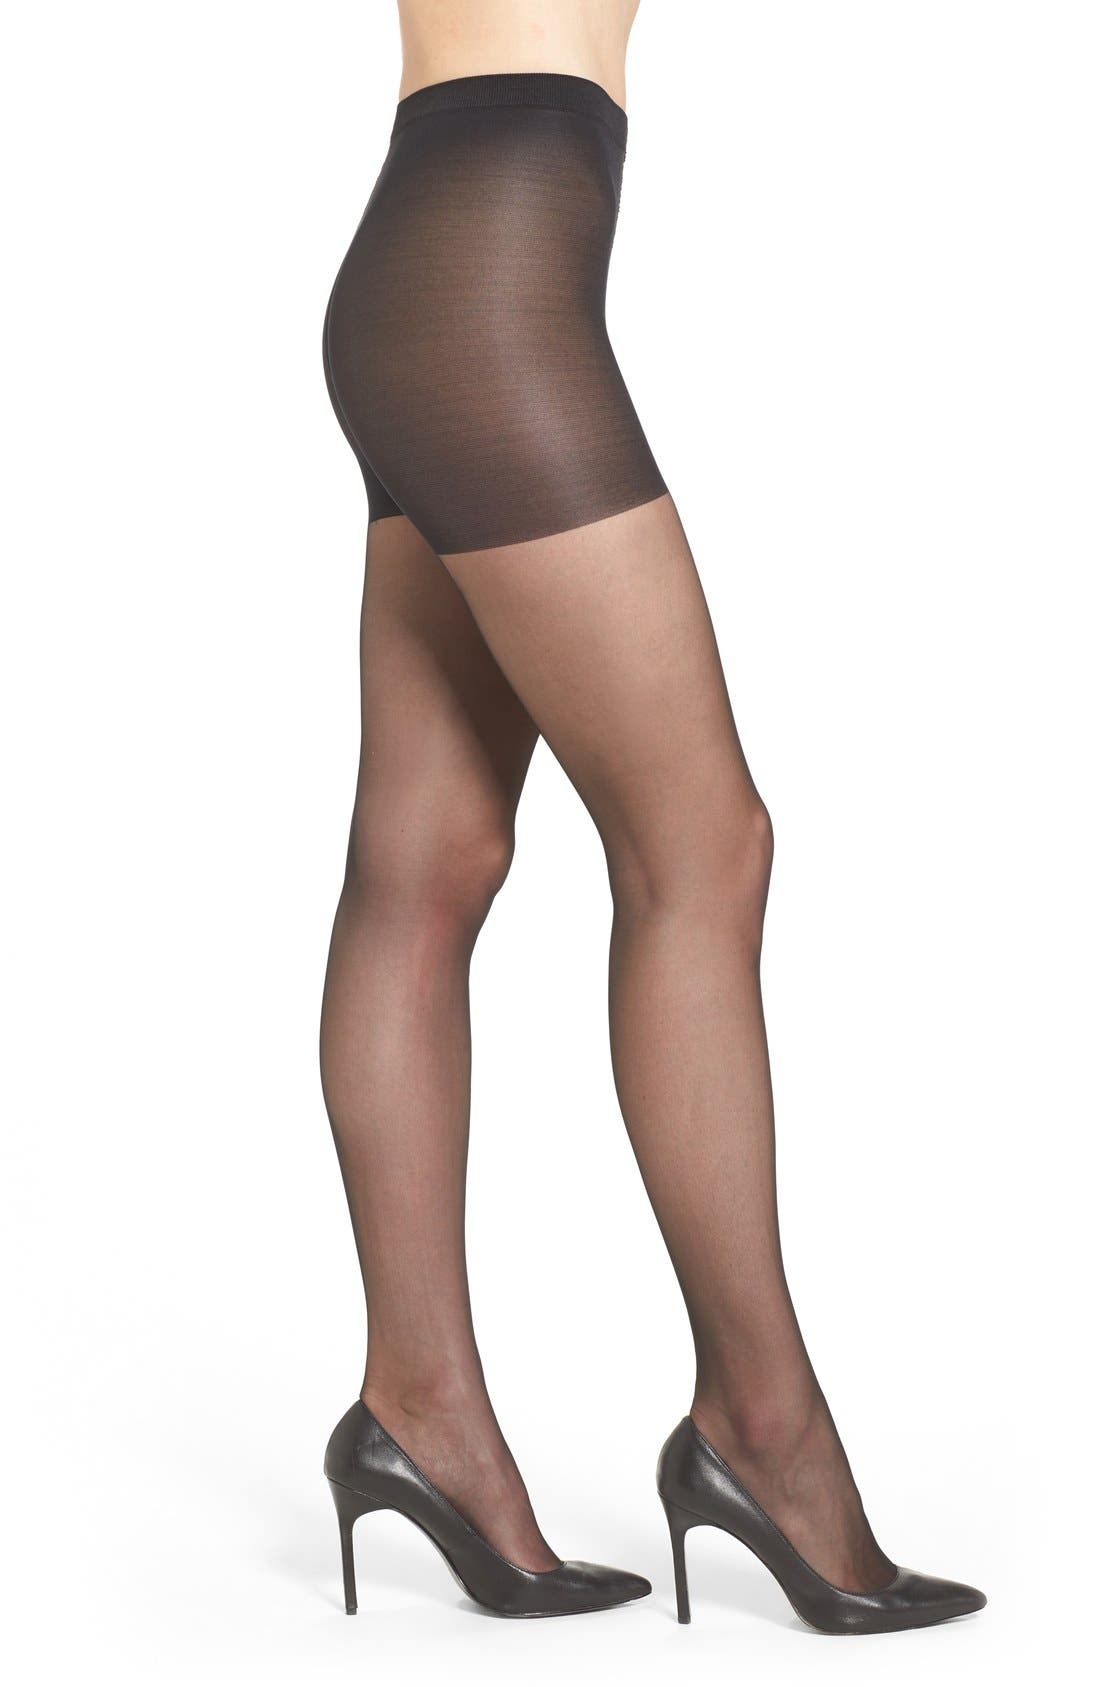 Alternate Image 1 Selected - Wolford Individual 10 Control Top Pantyhose